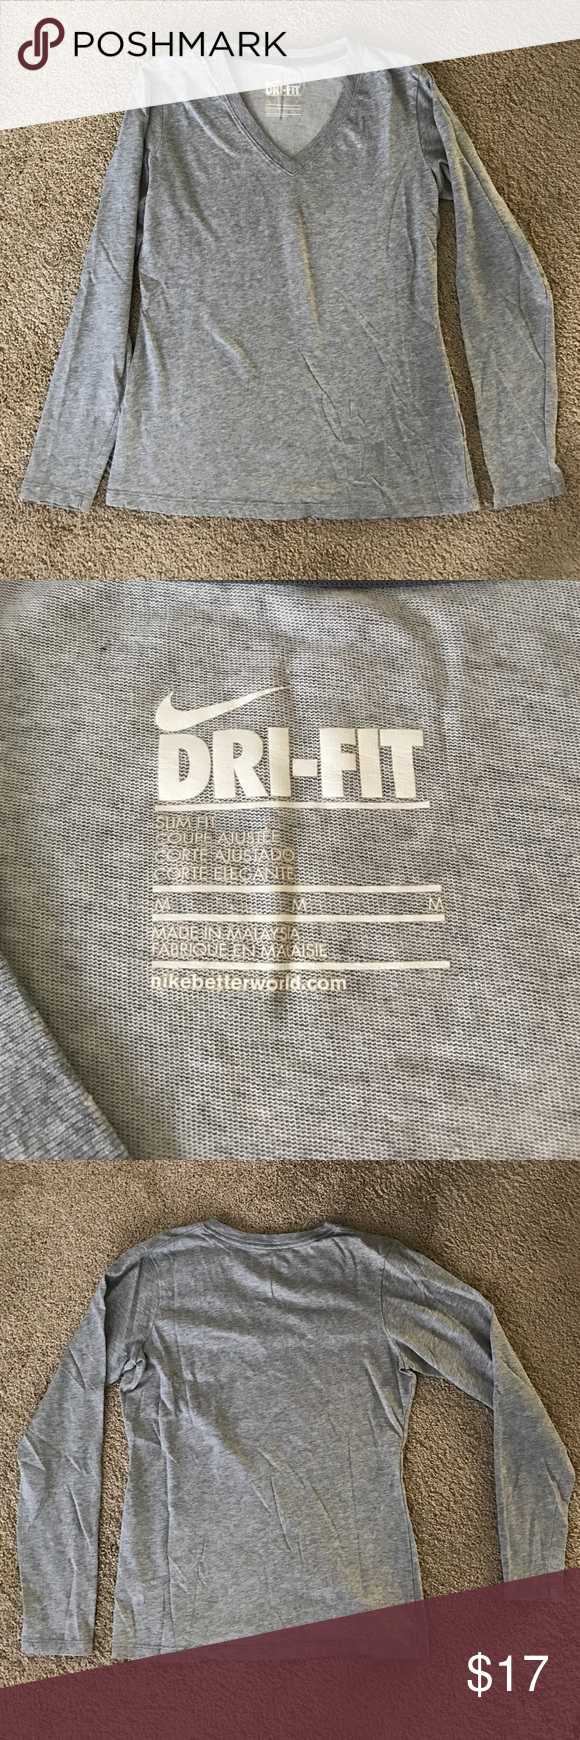 Nike dri fit slim fit long sleeve shirt Long sleeve dri fit, slim fit shirt by Nike. Size M, I usually wear small for reference. No damages, non smoking hom. No trades! Nike Tops